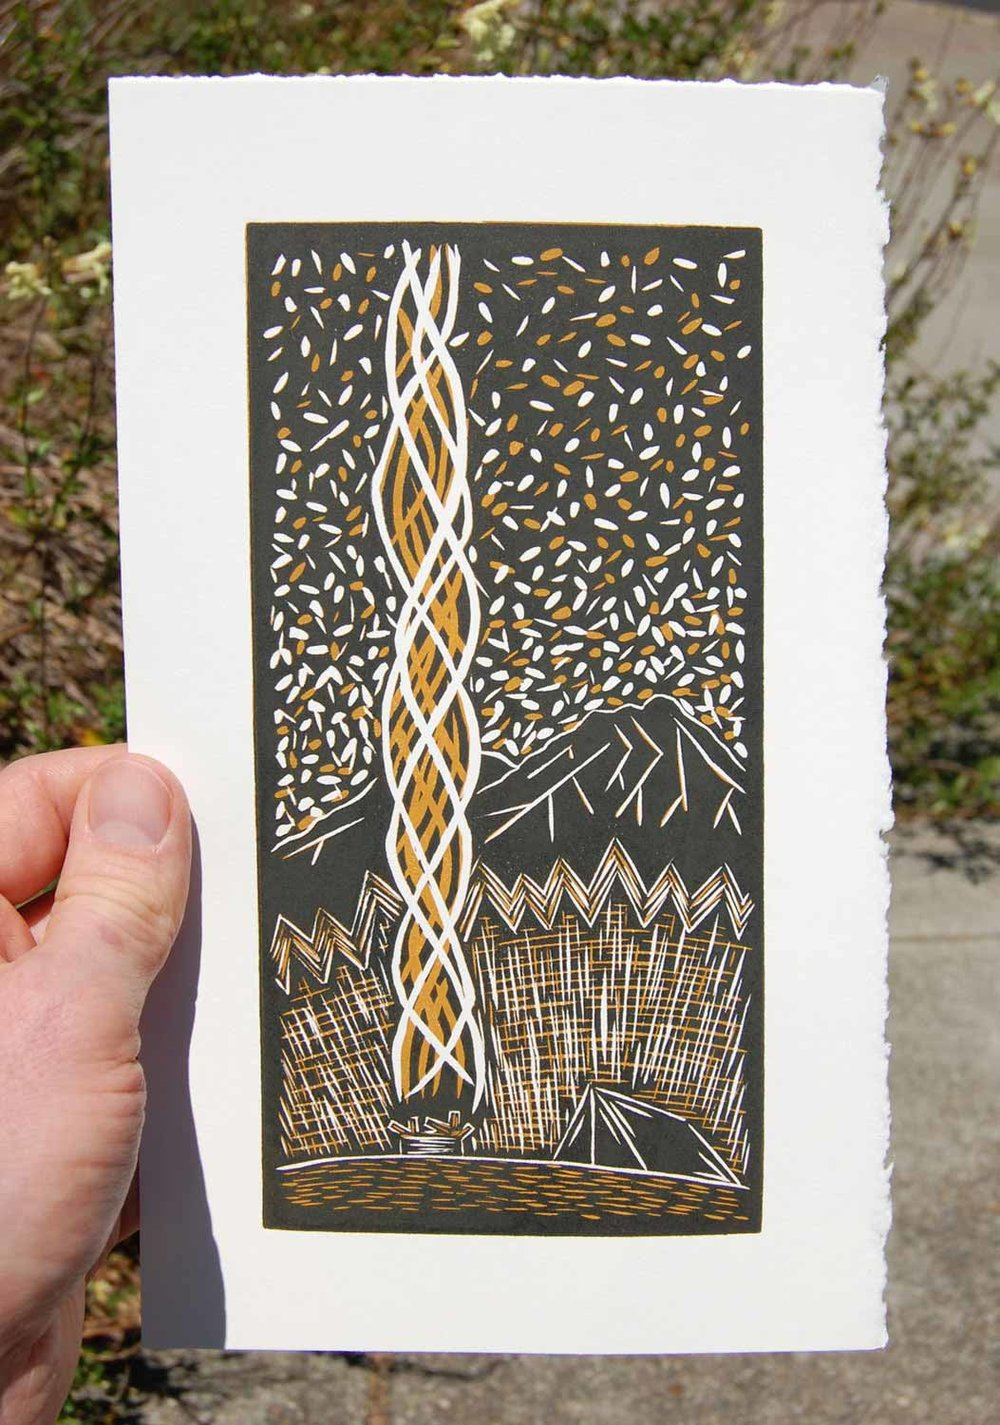 Solitude II | Reduction Linocut Print